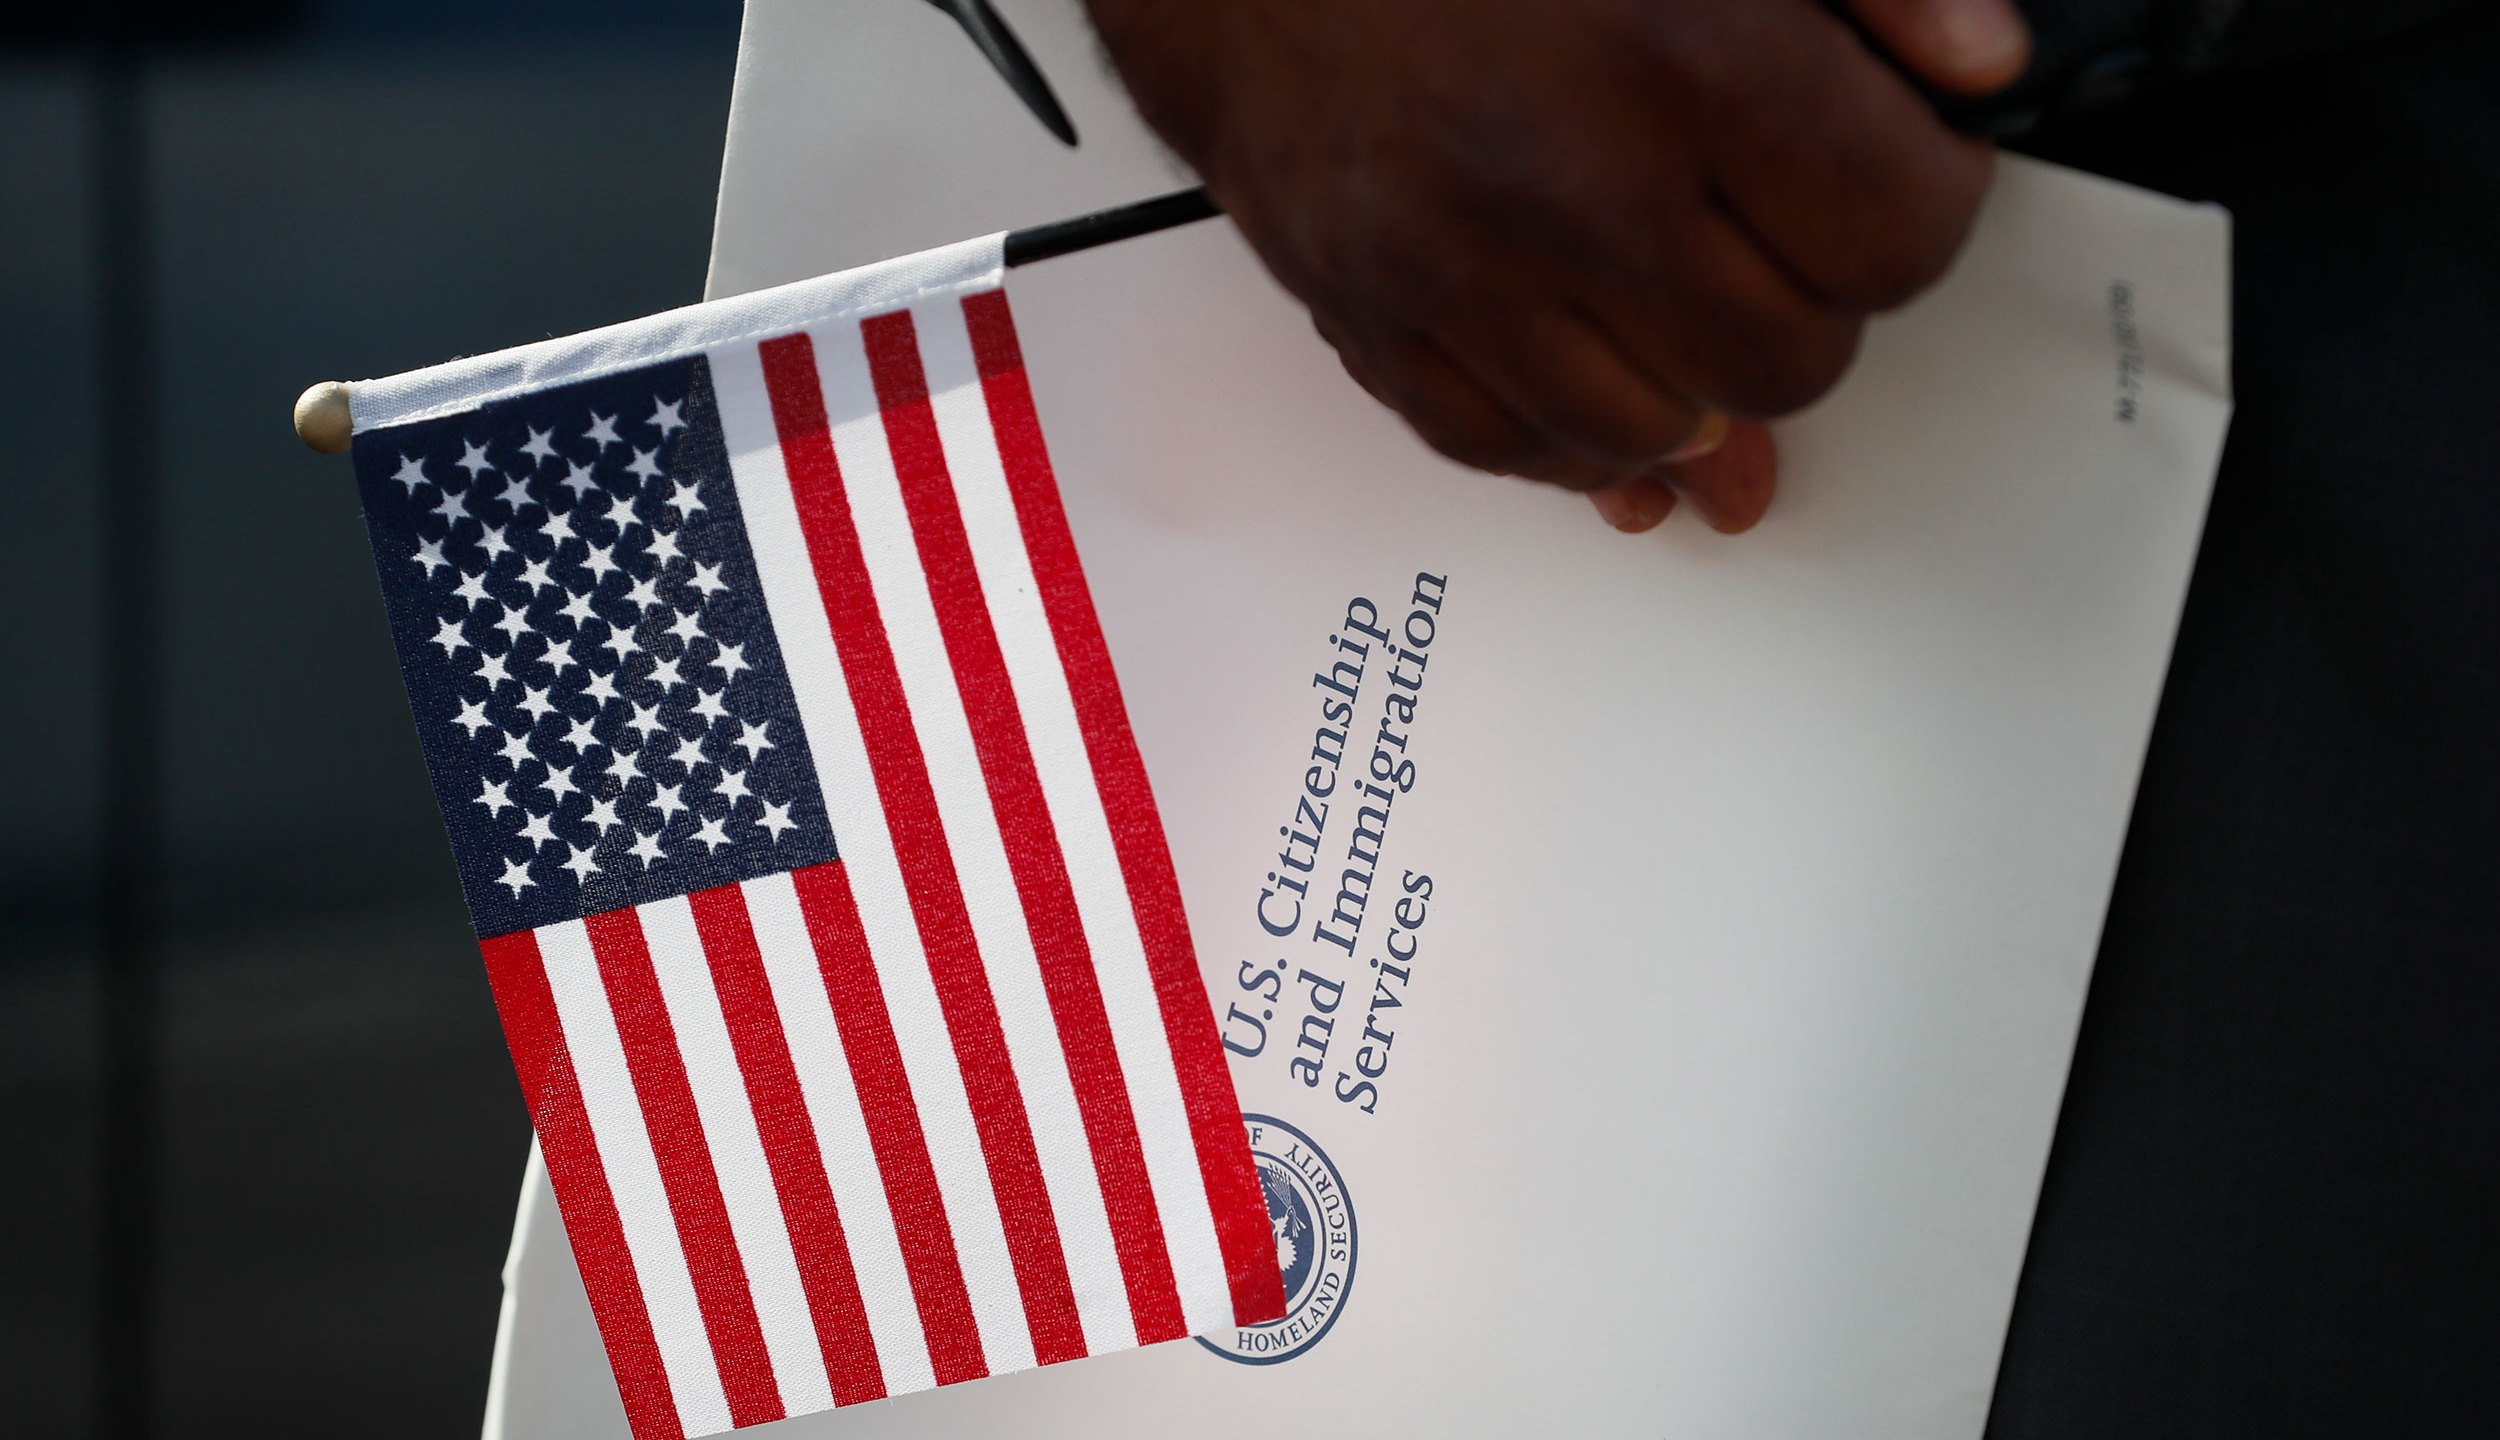 A record number of people are giving up their US citizenship, new research published on Sunday found. (Charlie Neibergall/AP)